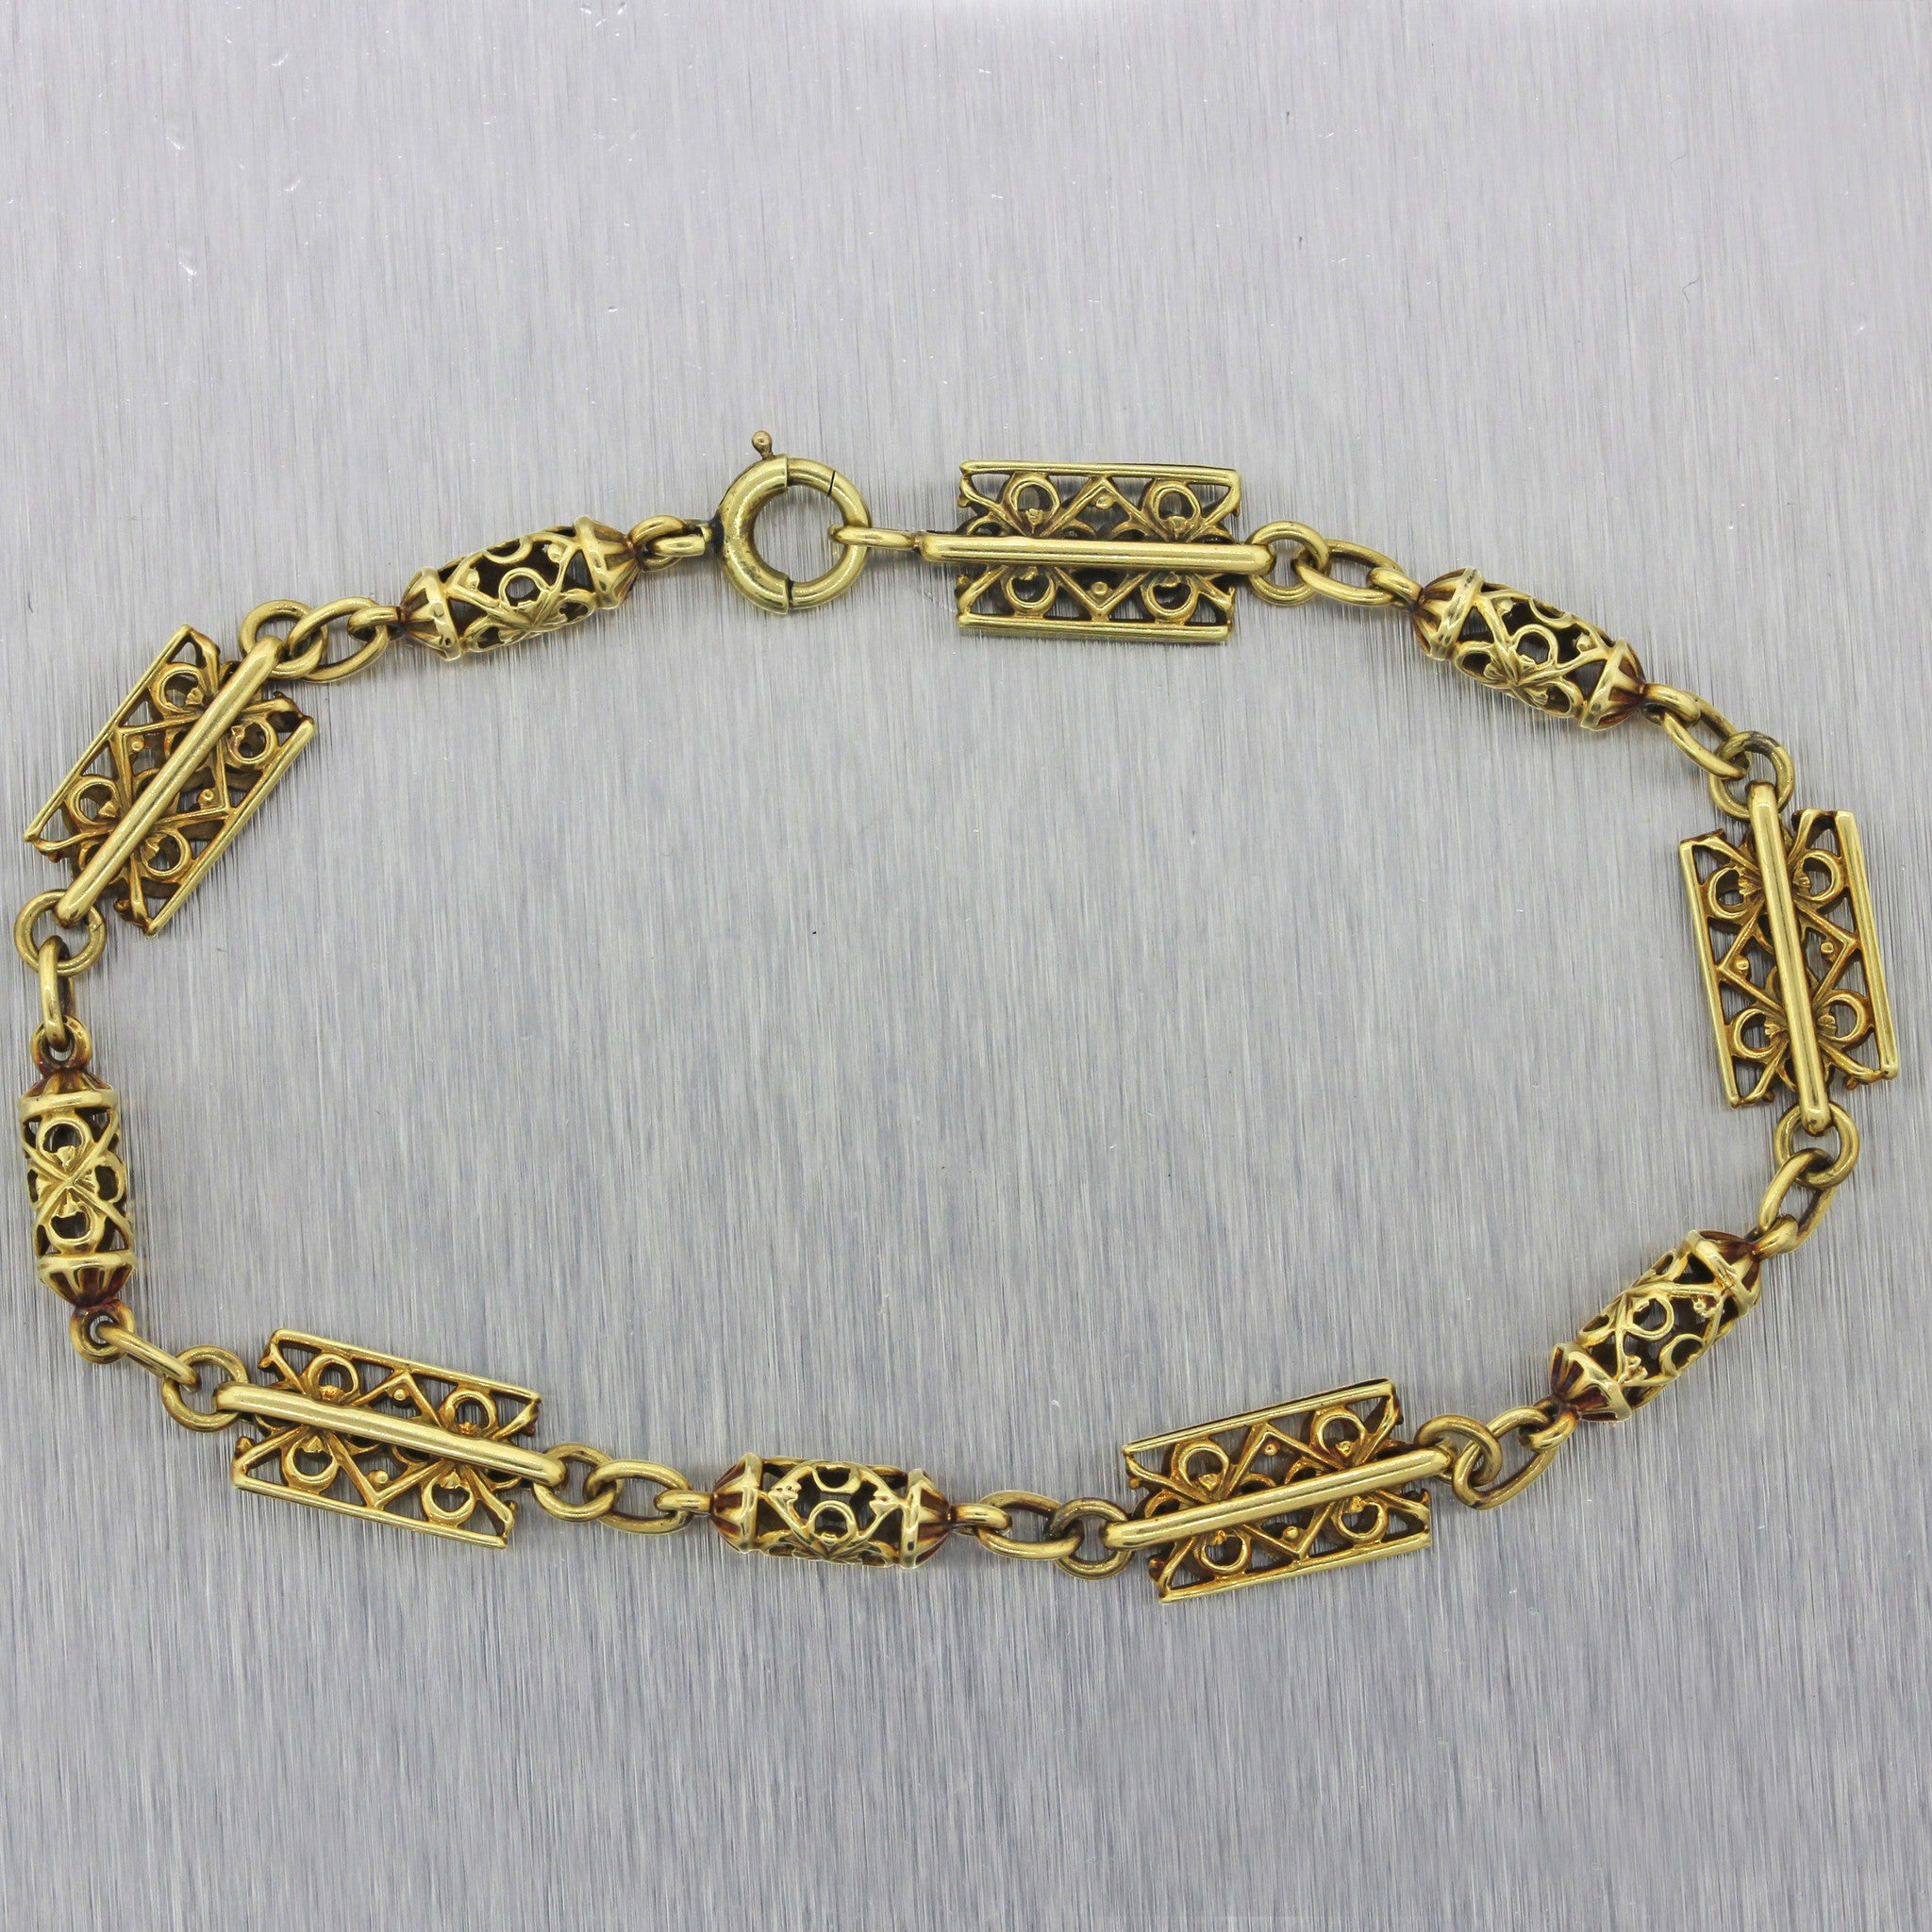 1920s Antique Art Deco Estate 14k Solid Yellow Gold Filigree Chain Link Bracelet